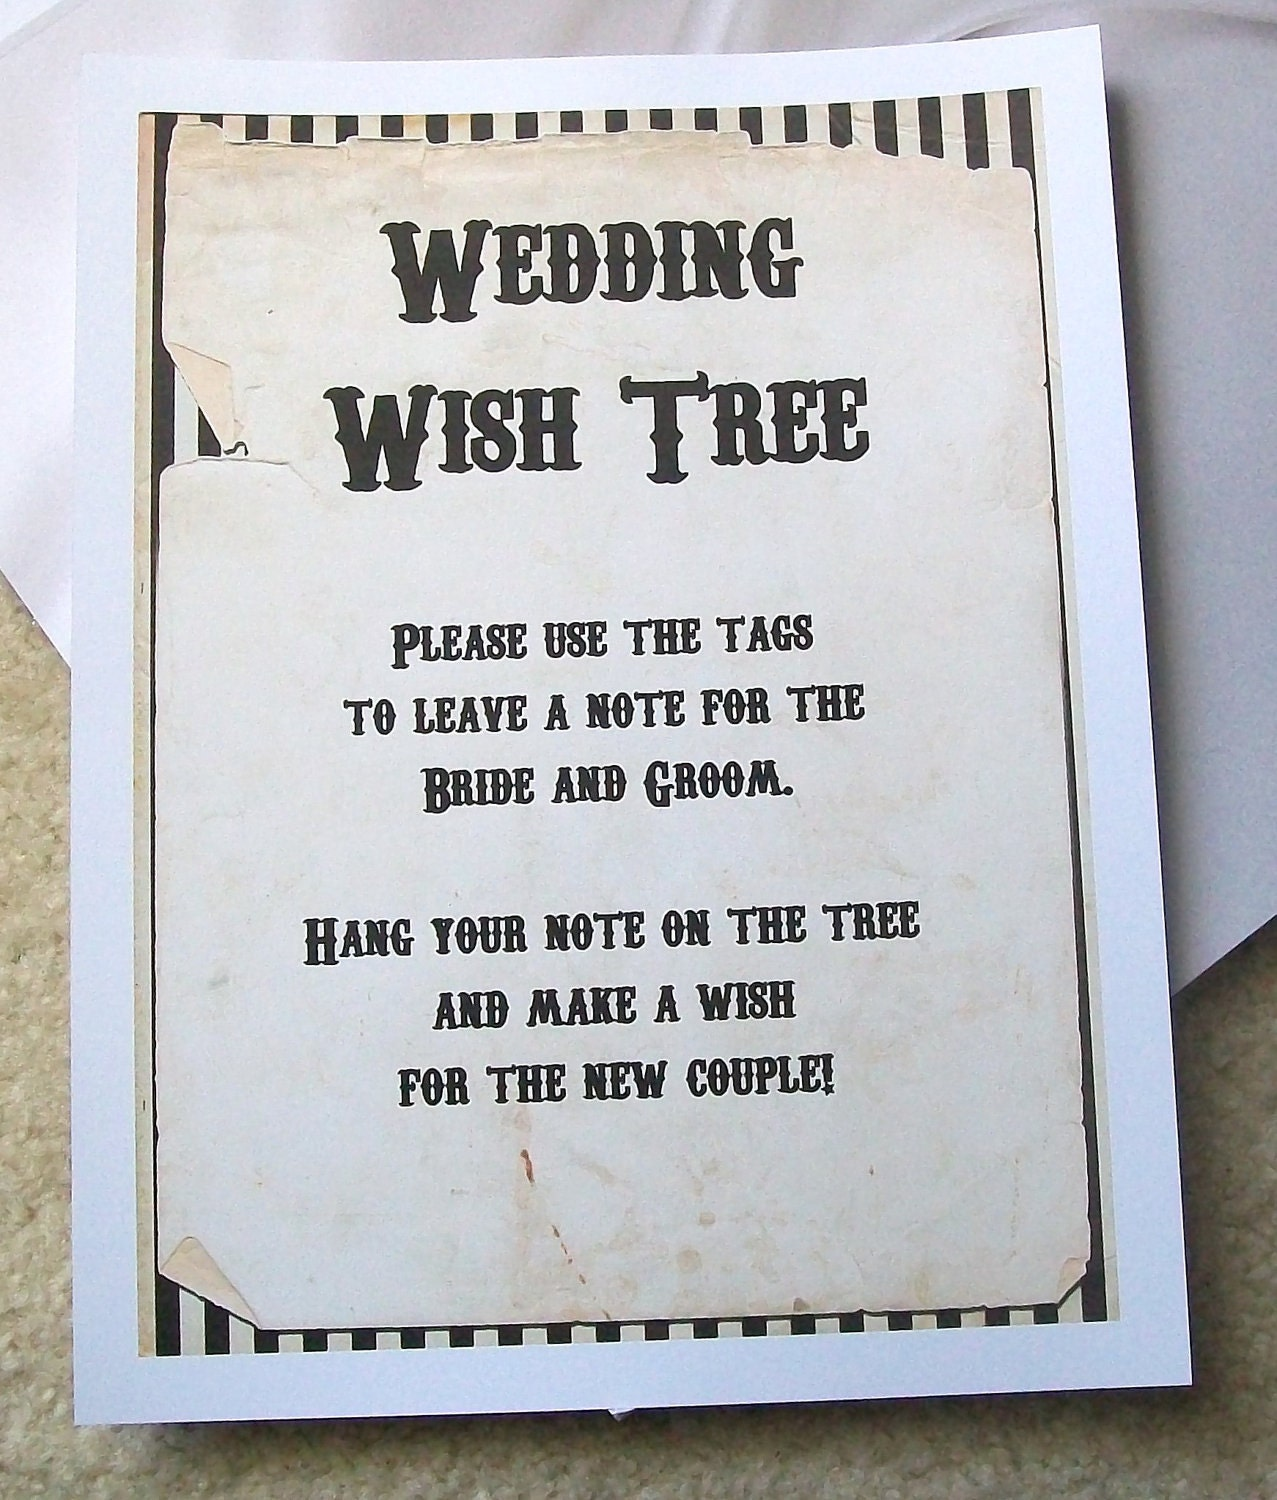 Monetary Wedding Gift Guidelines : Wishing Tree Tags Instructions Sign Customize For by paperpixie